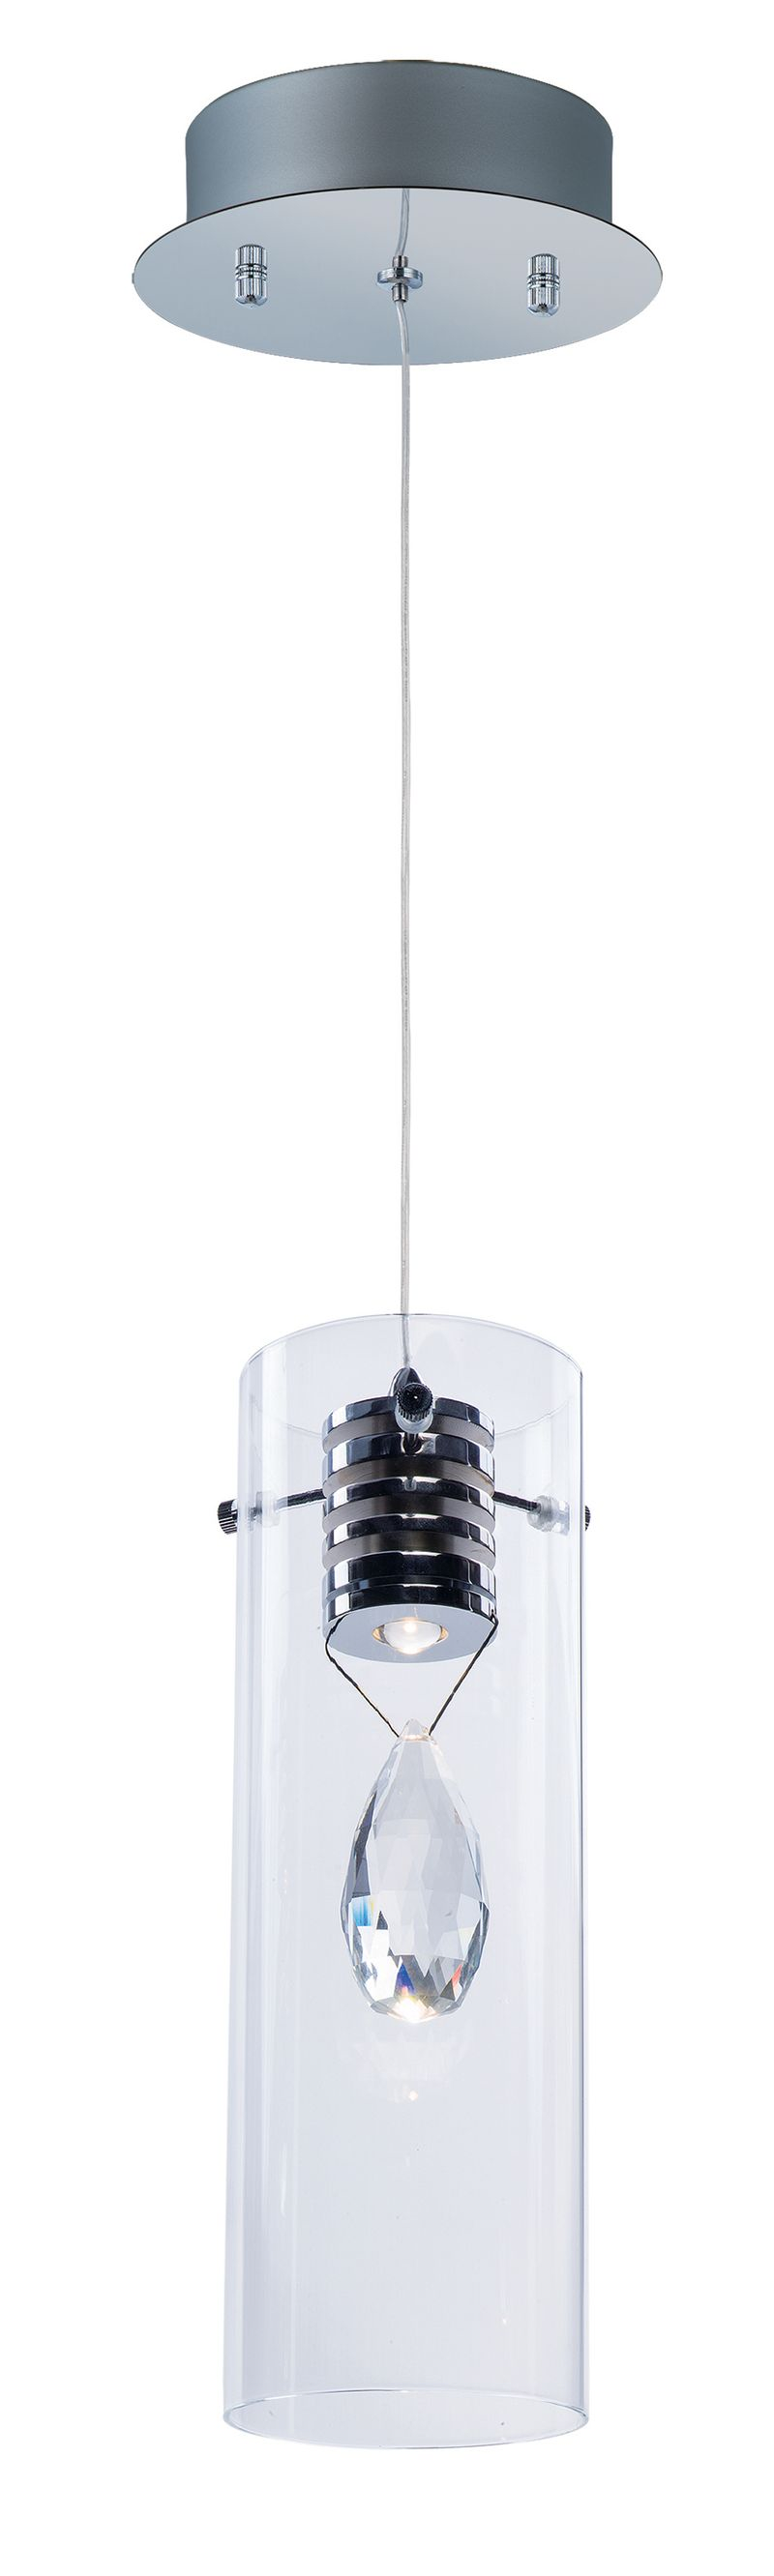 "Solitaire 4.25"" 1-Light Single Pendant - Polished Chrome"